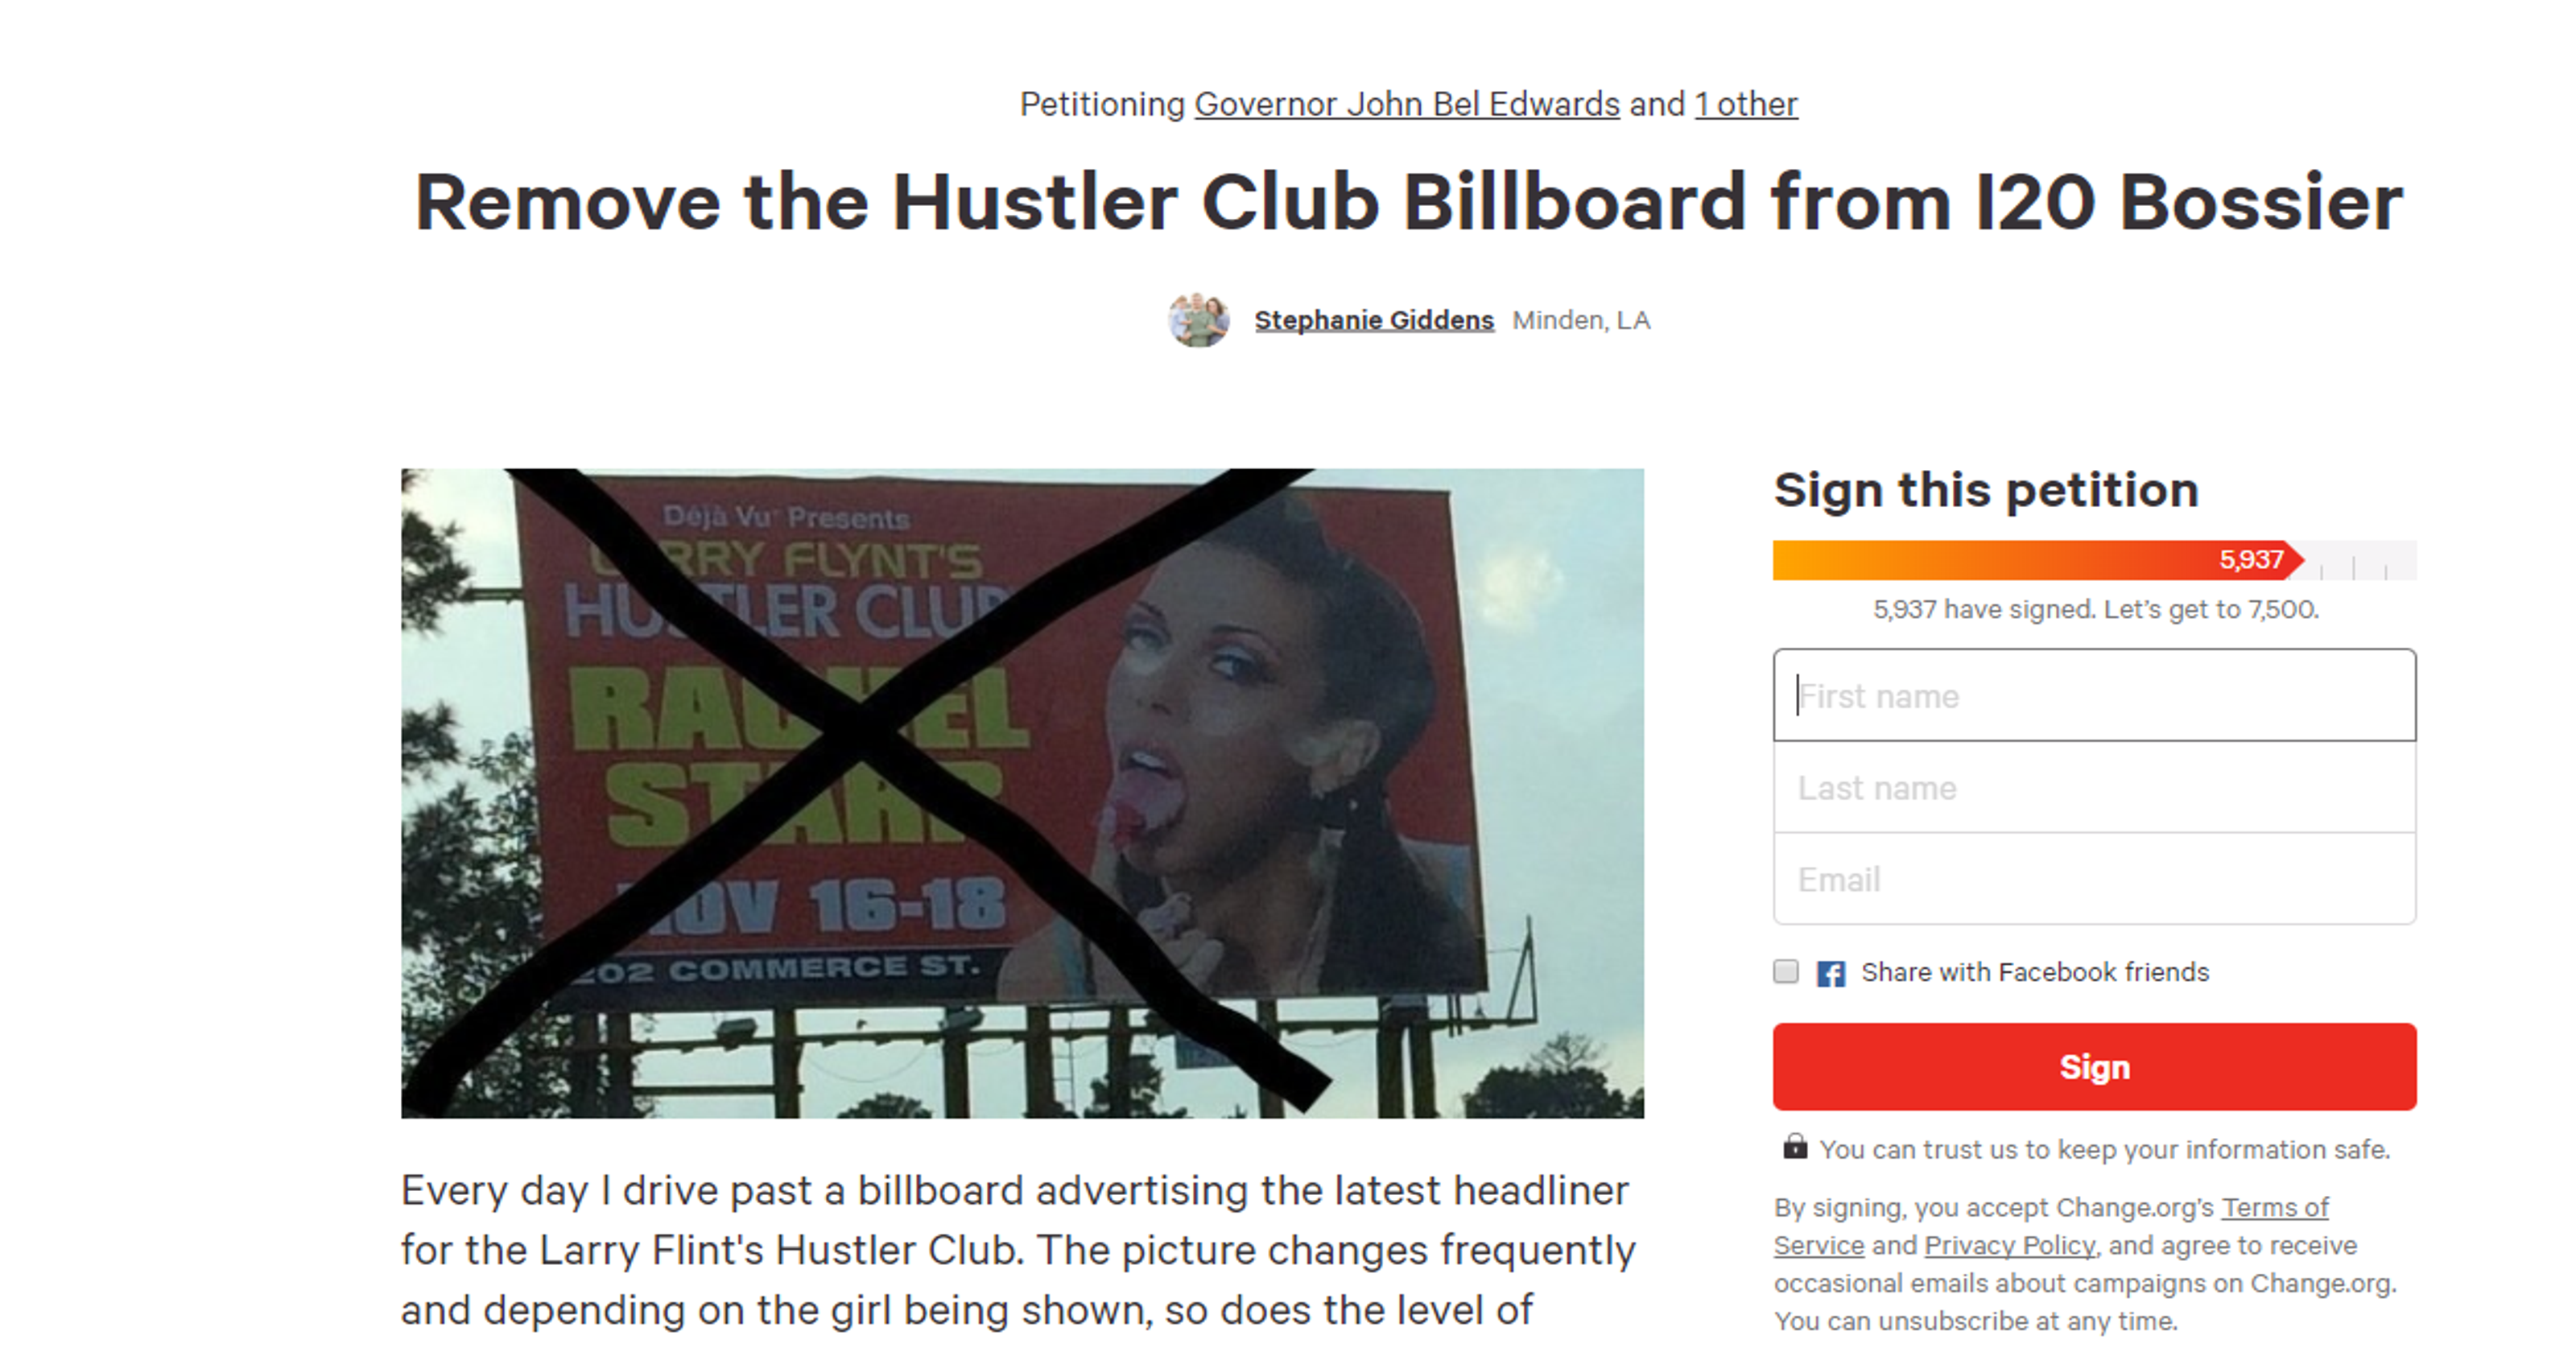 'Suggestive' billboard on I-20 being petitioned for removal